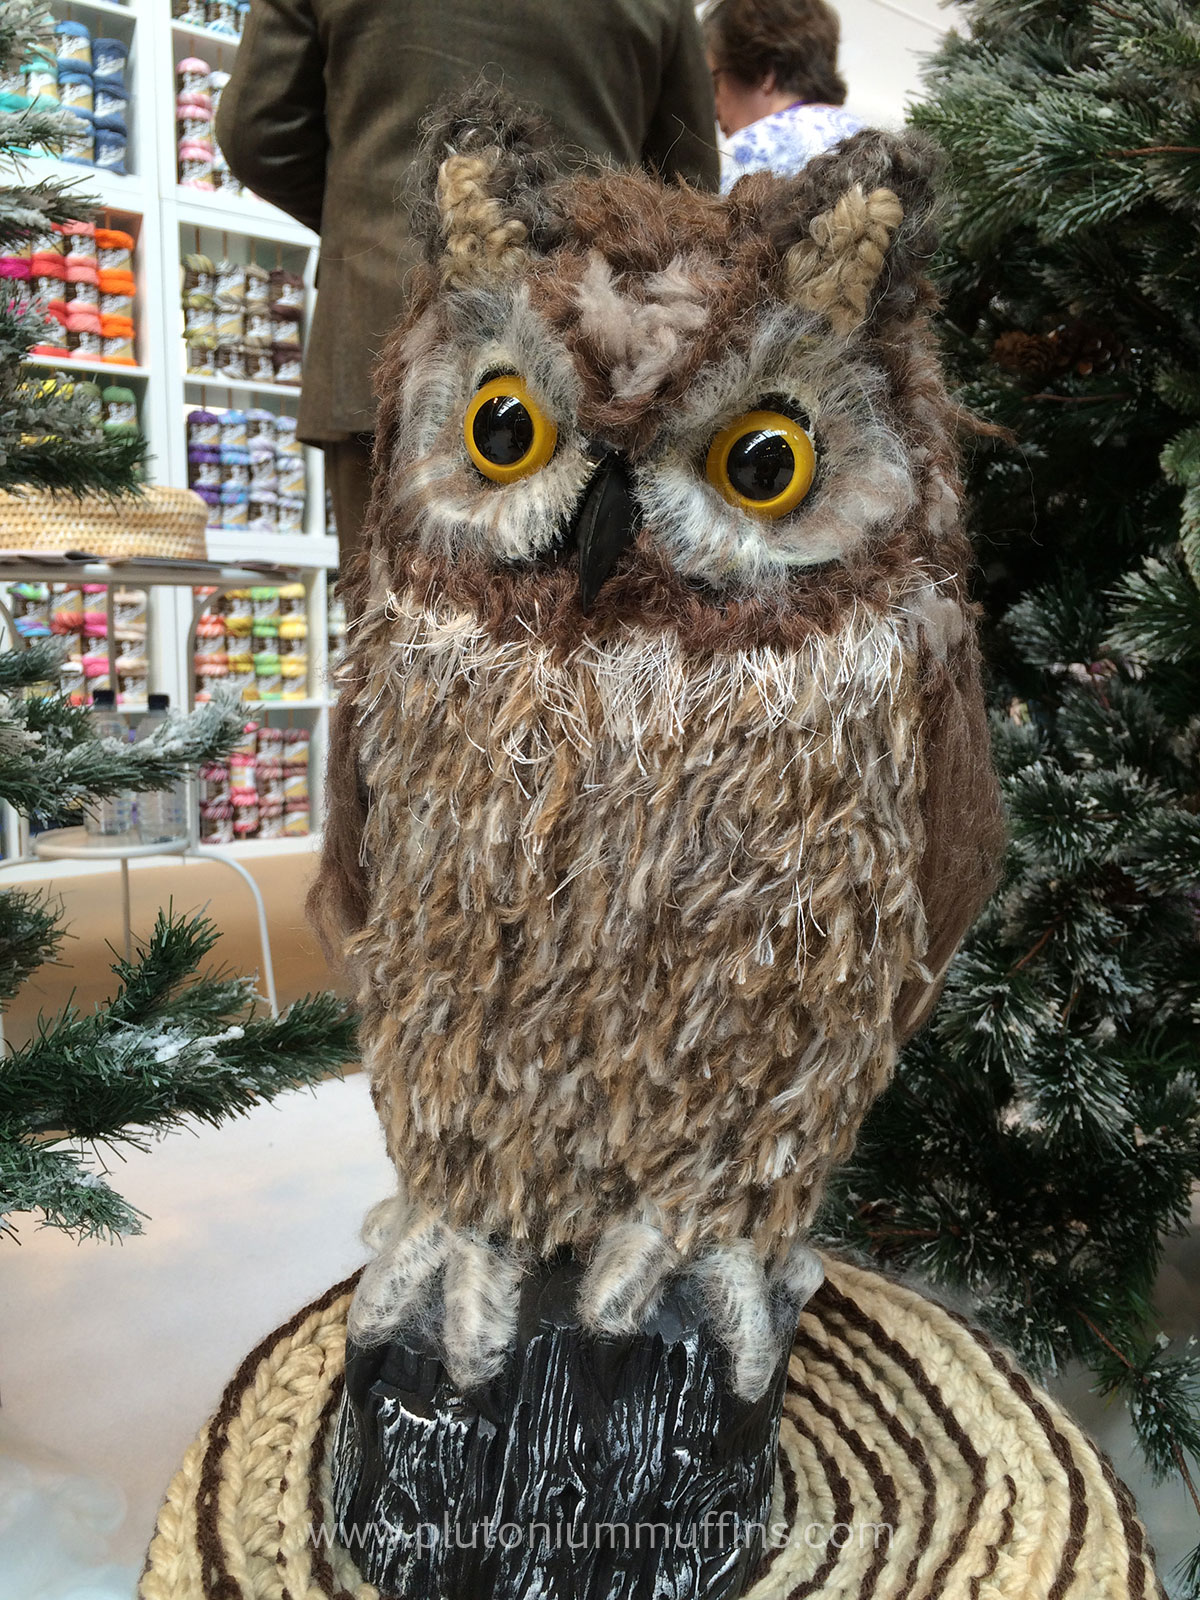 The second owl on the Yarnia stand.